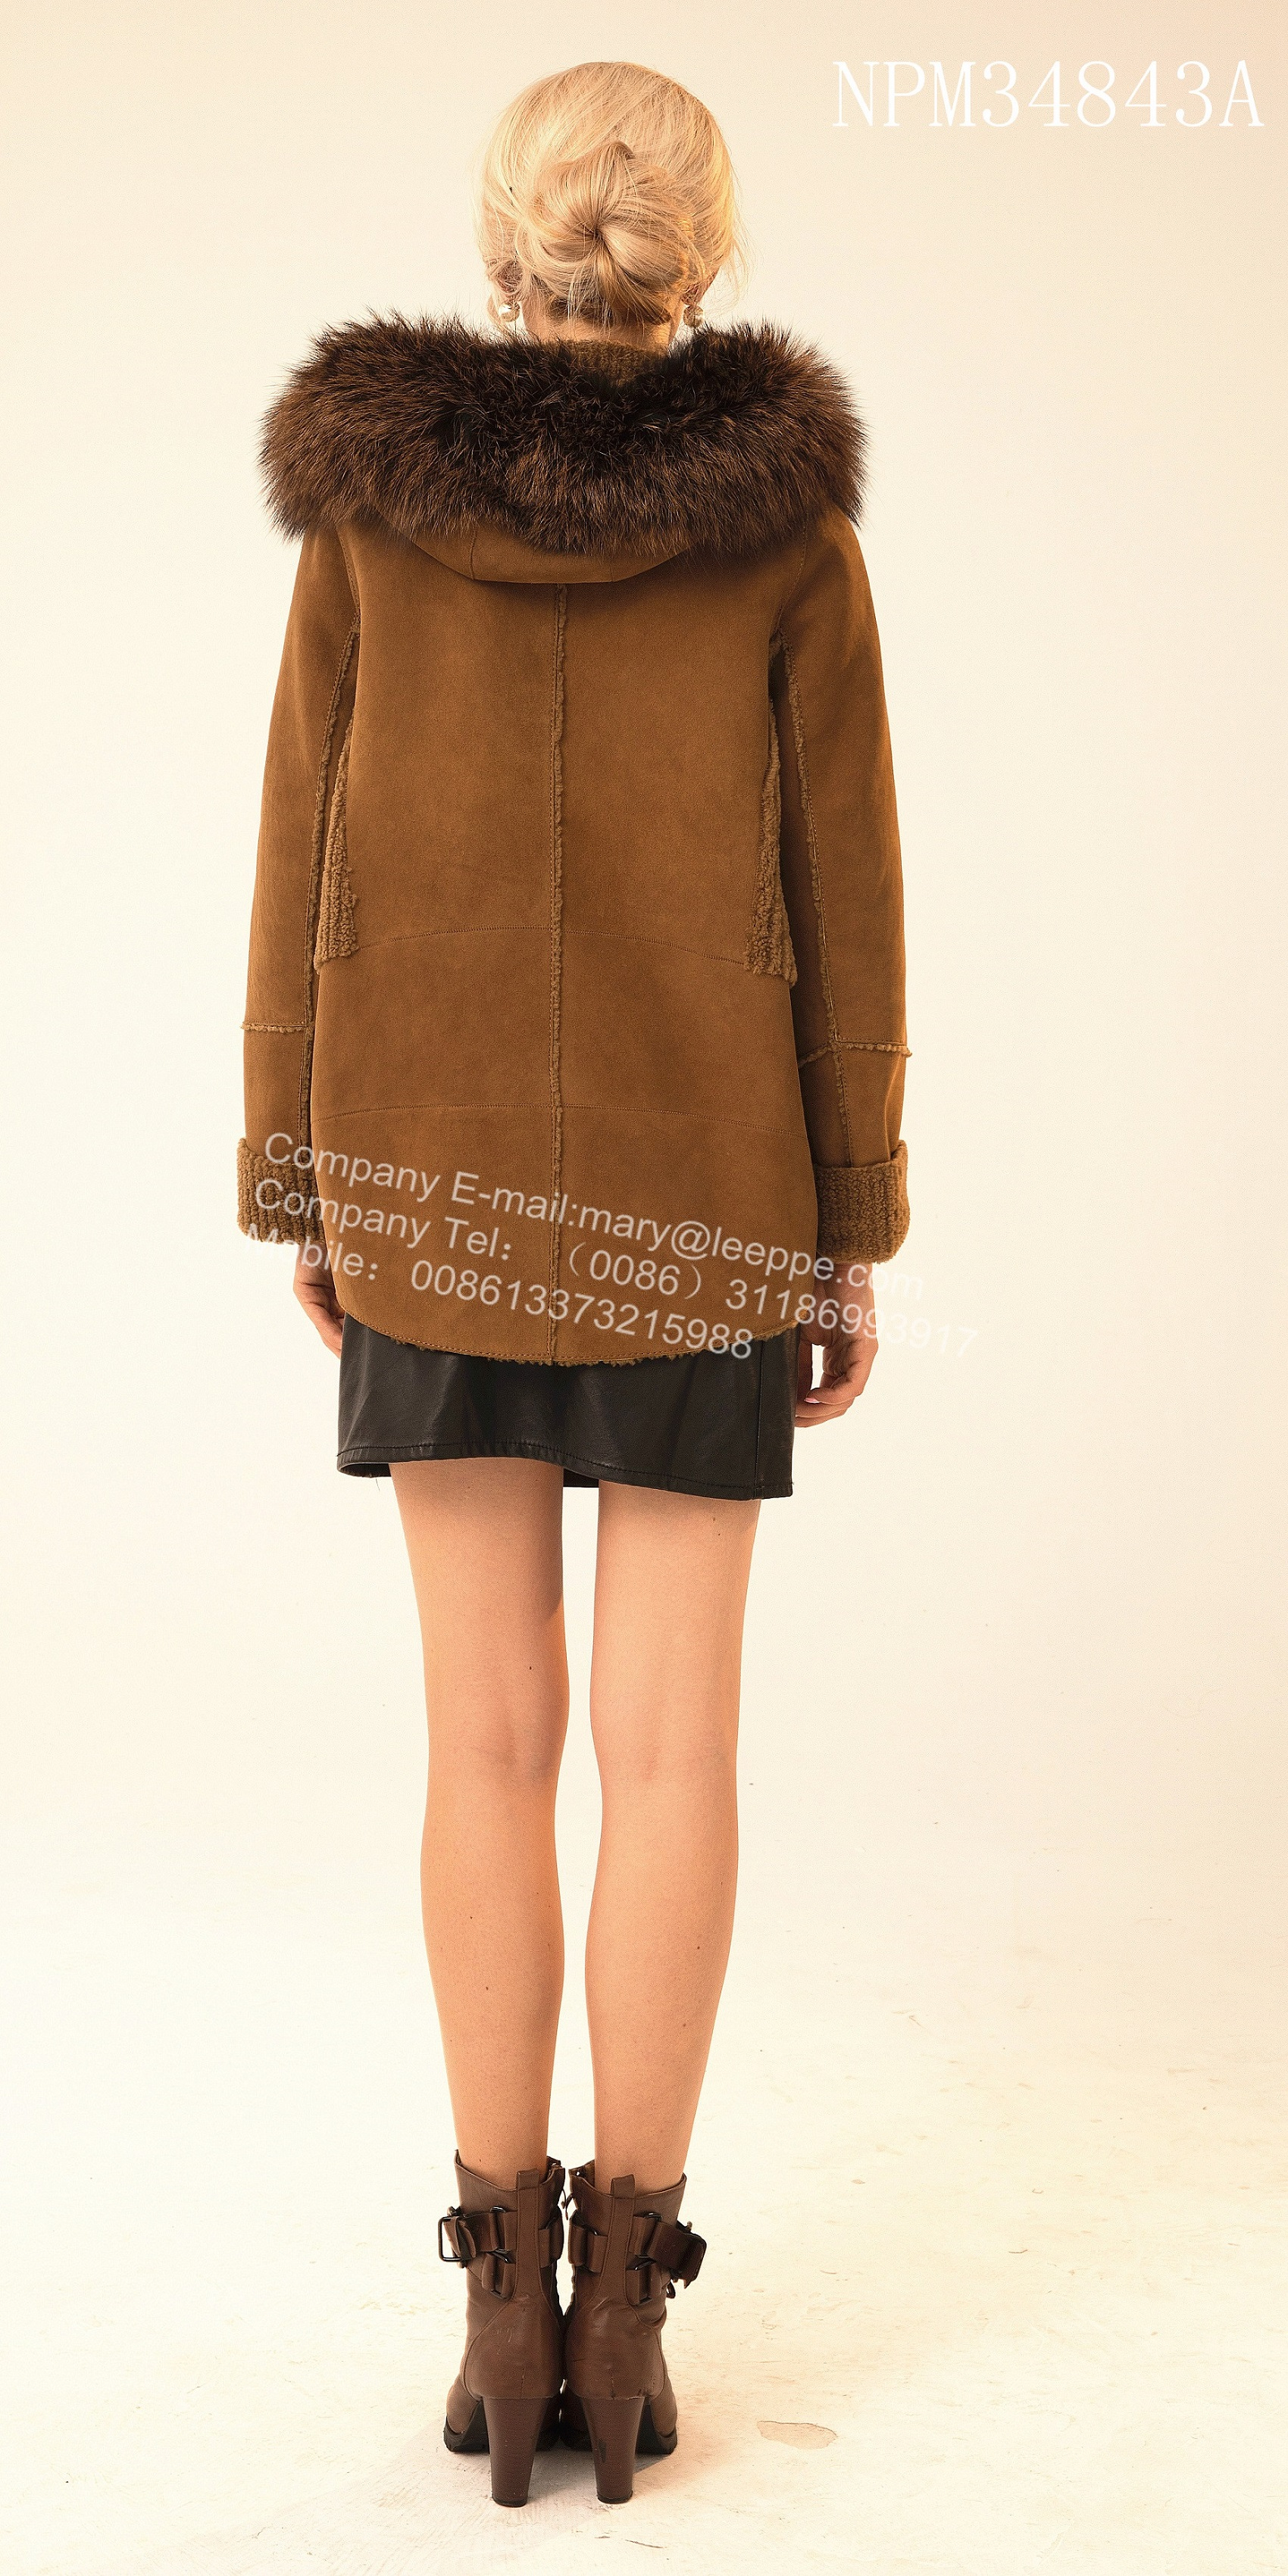 Short Rib Sleeve Copenhagen Fur Hooded Jacket